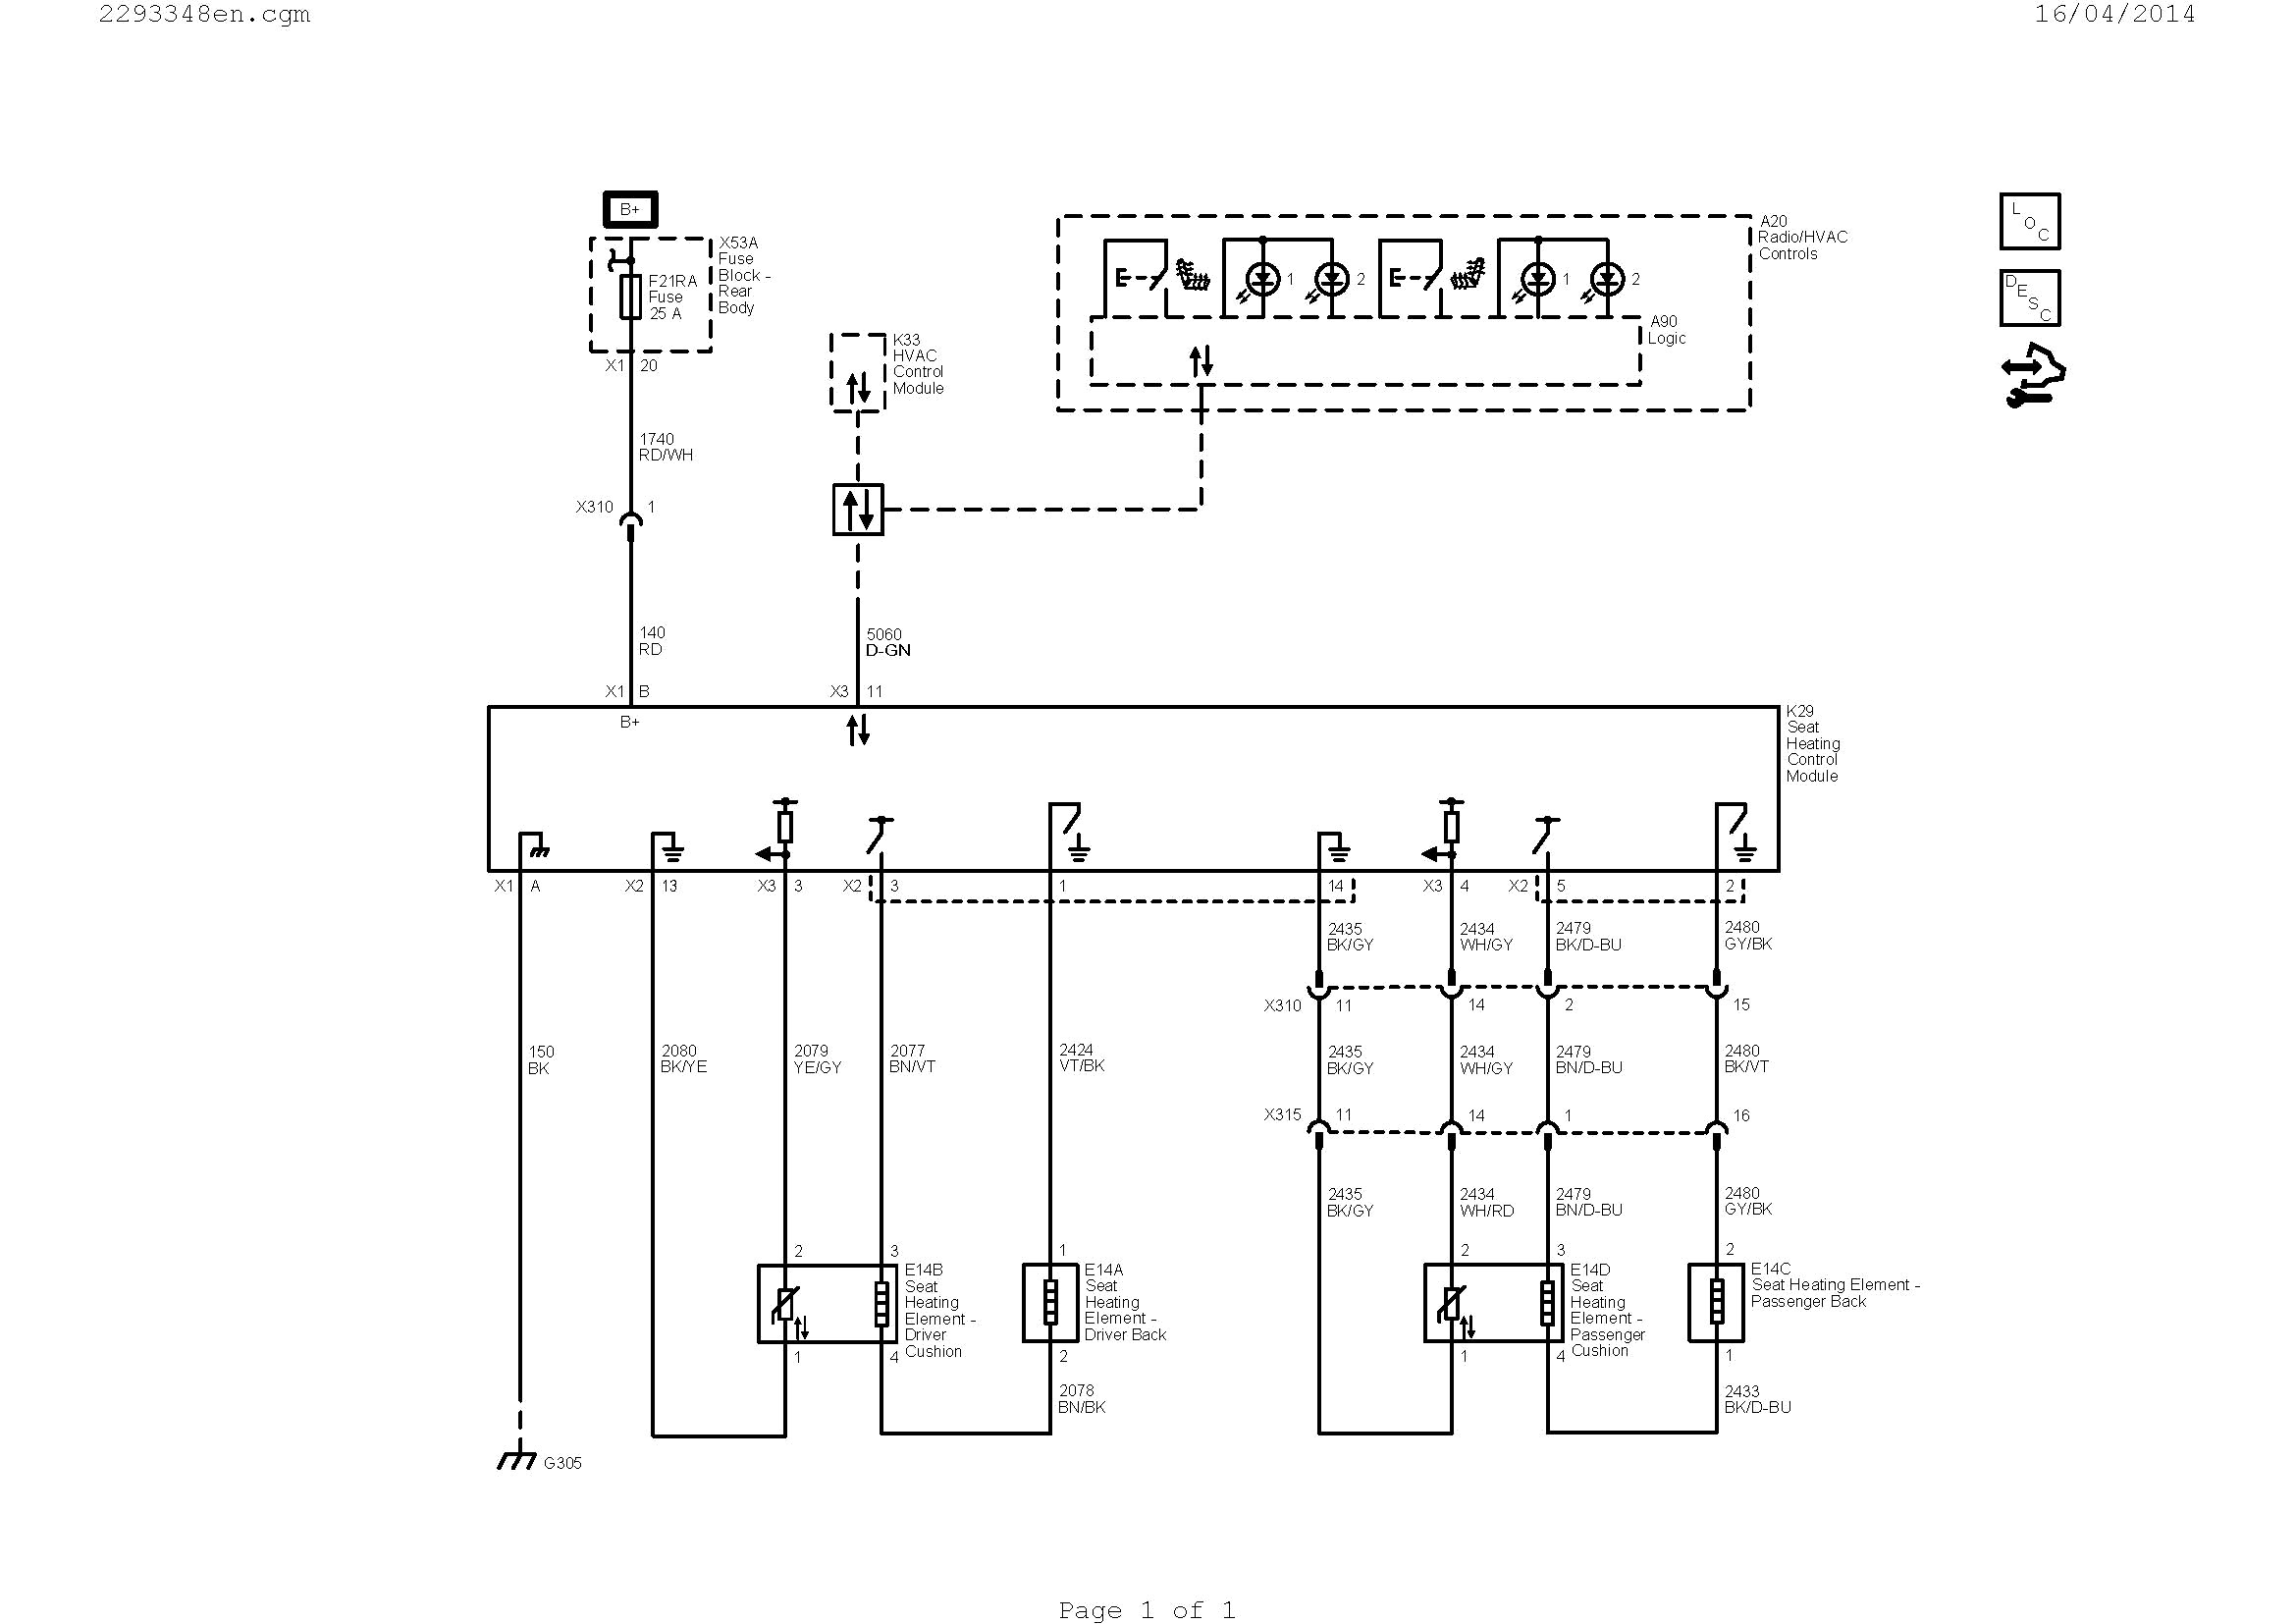 go light wiring diagram Download-automotive wiring diagram board diagram best automotive wiring diagrams elegant hvac of automotive wiring diagram 11-a